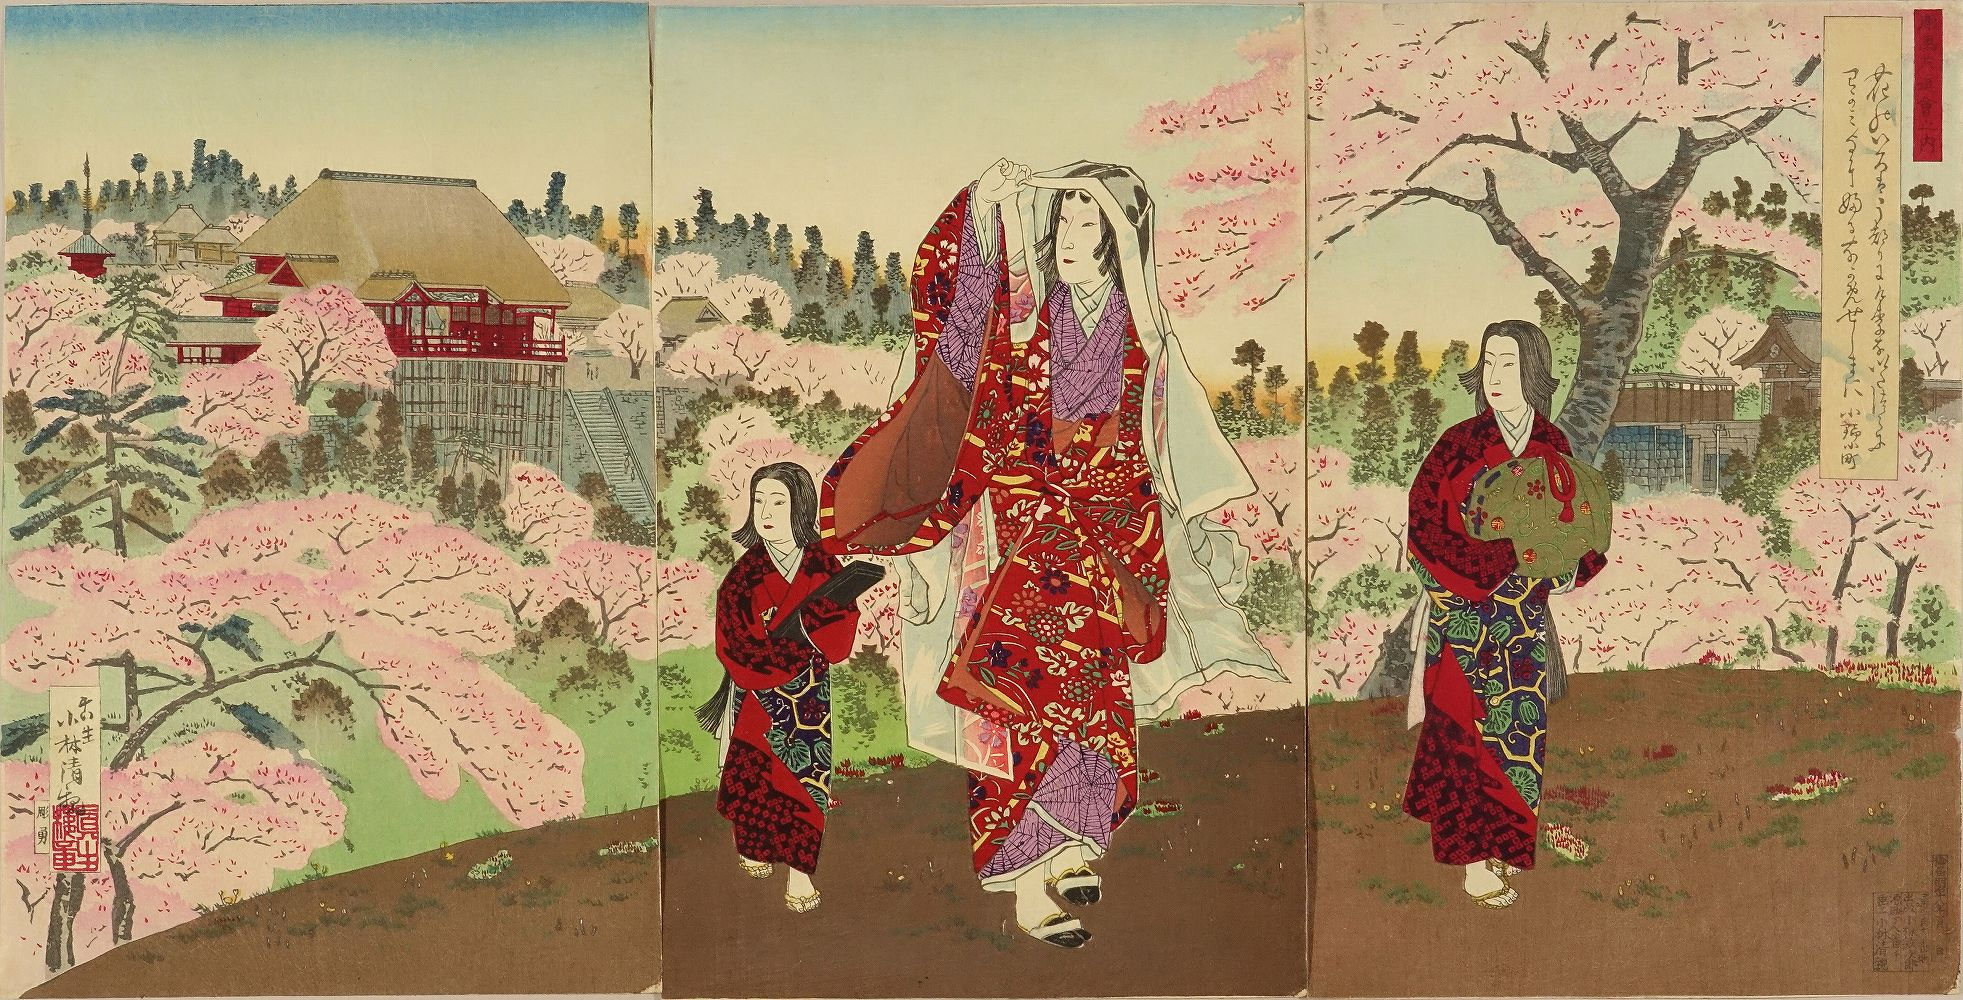 KIYOCHIKA A beauty and servants viewing Kiyomizu Temple surrounded by cherry blossom, with a poem by Ono no Komachi, from prints offered at Choga kyoshin kai (Printed picture competition), triptych